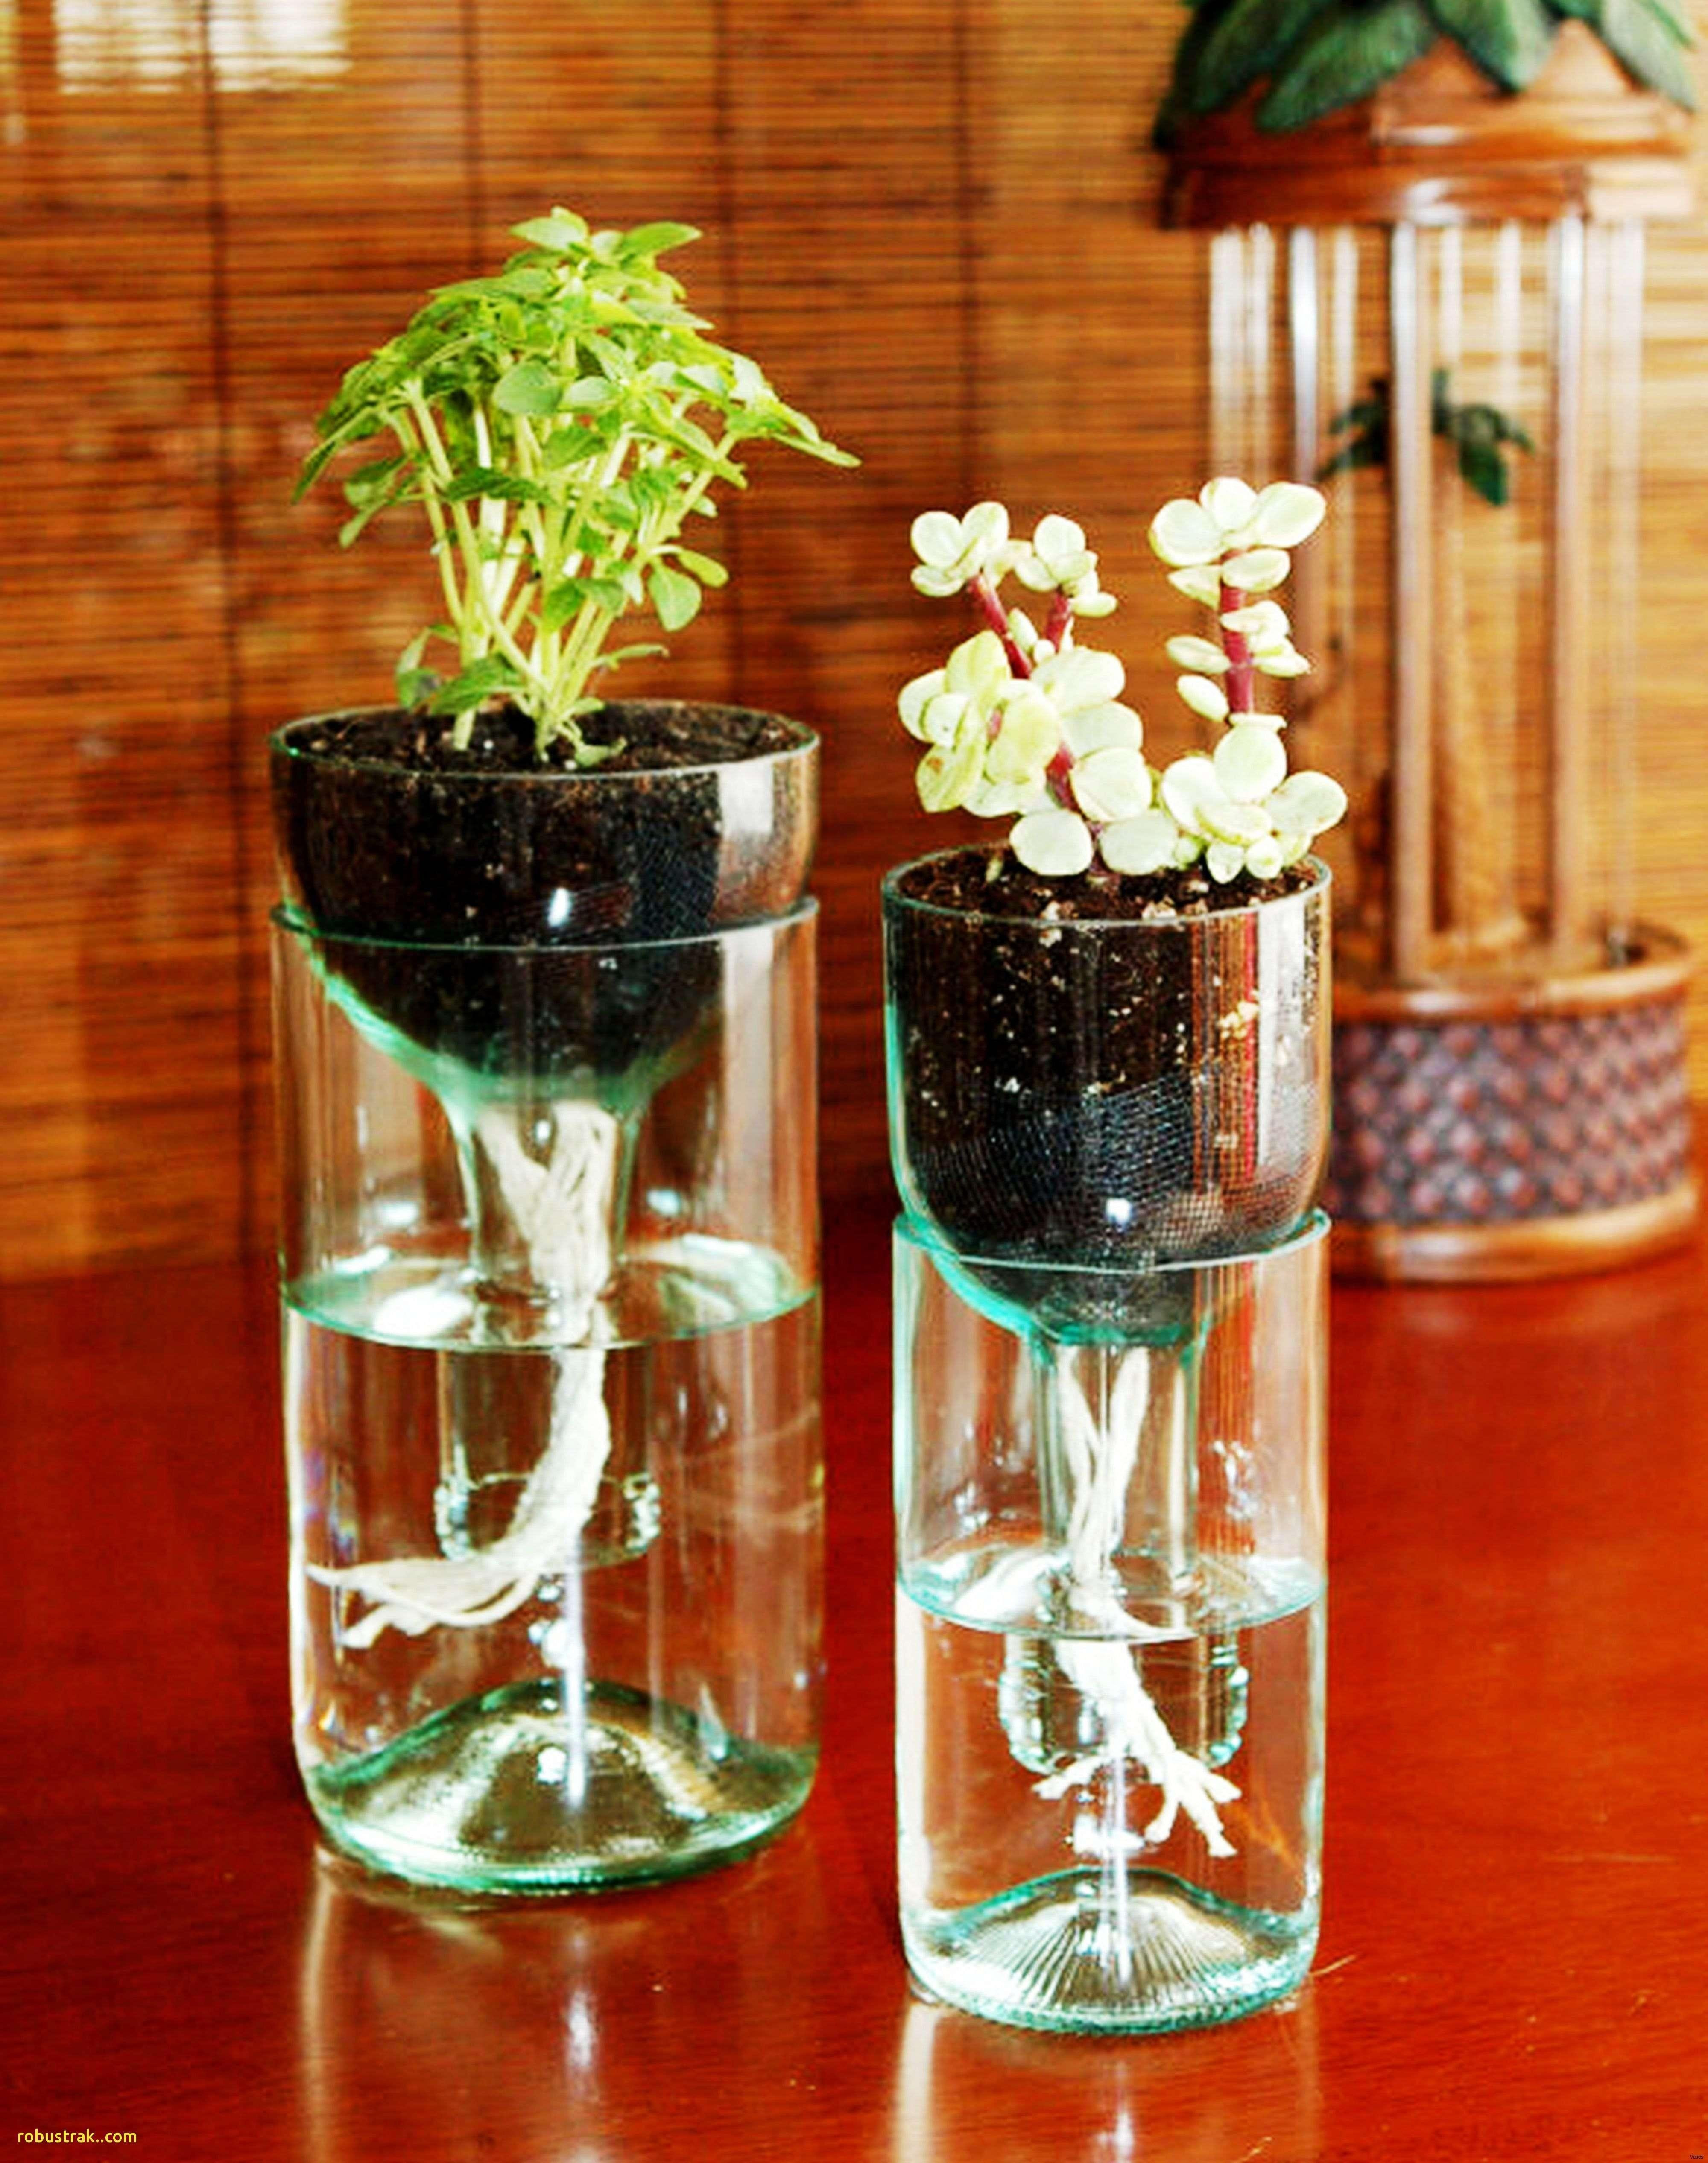 small teal vase of new christmas table decorations ideas home design interior design pertaining to stunning flower vase decoration home diy interior ideas with homeh vases homei 0d vases vase